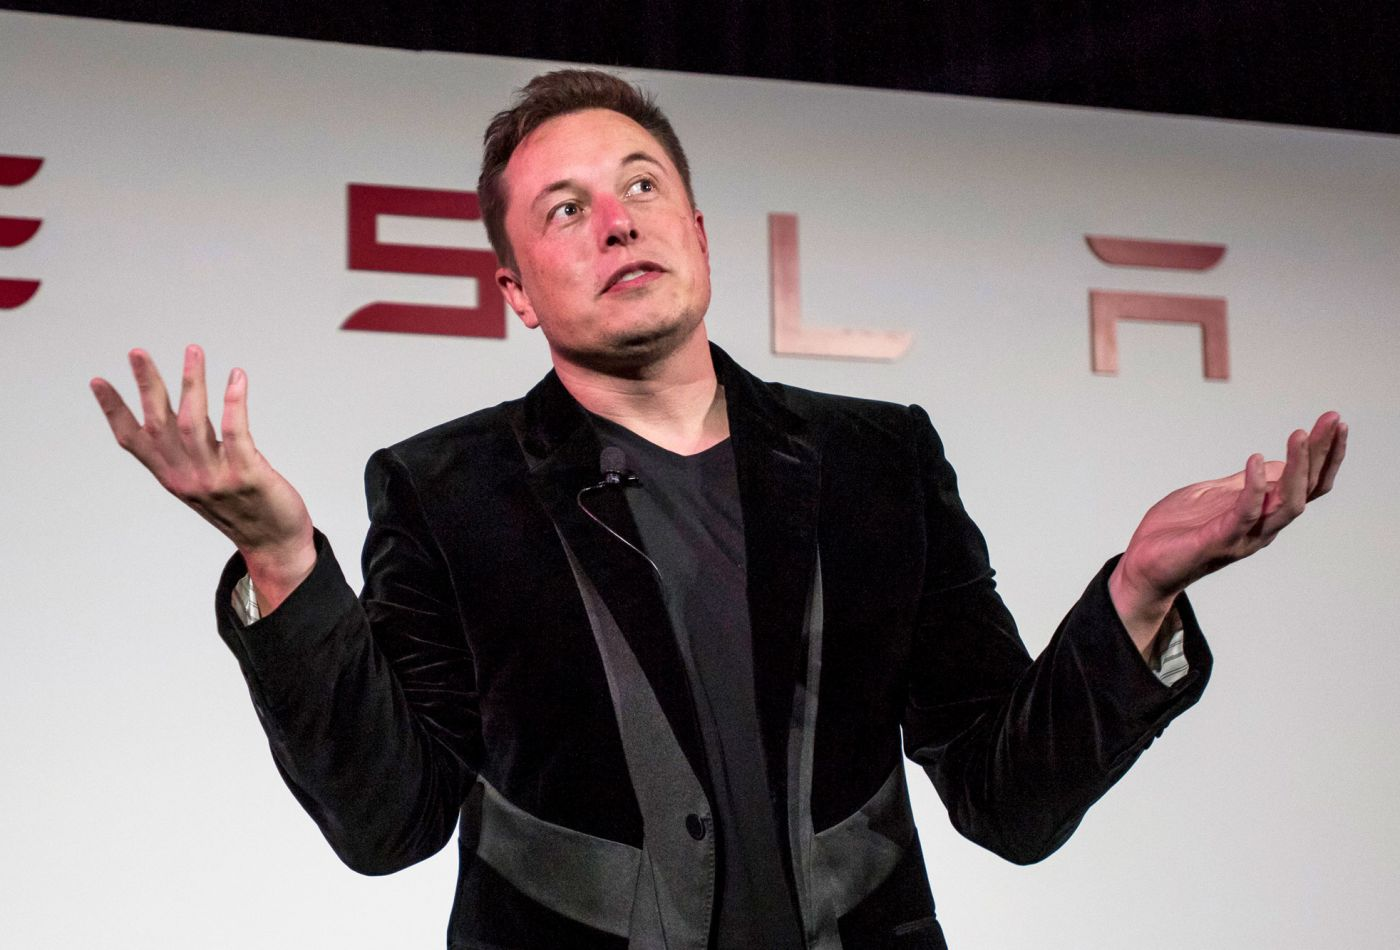 Elon Musk Says That A Range Of 400 Miles Will Soon Be Offered By Tesla